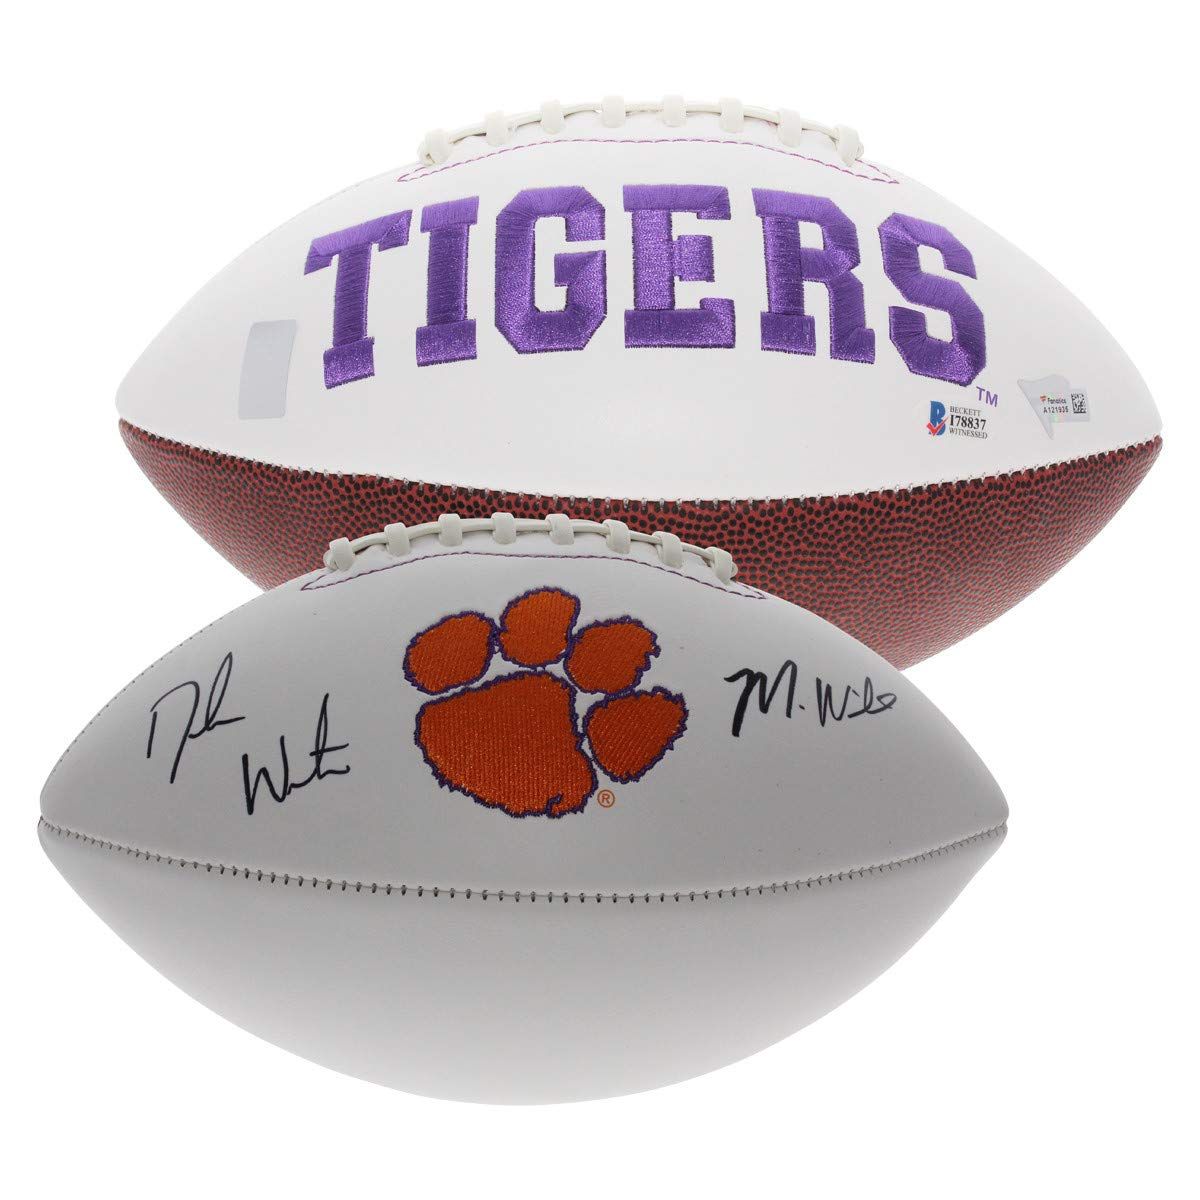 Deshaun Watson and Mike Williams Autographed Signed Clemson Tigers White Panel Football - Fanatics Authentication